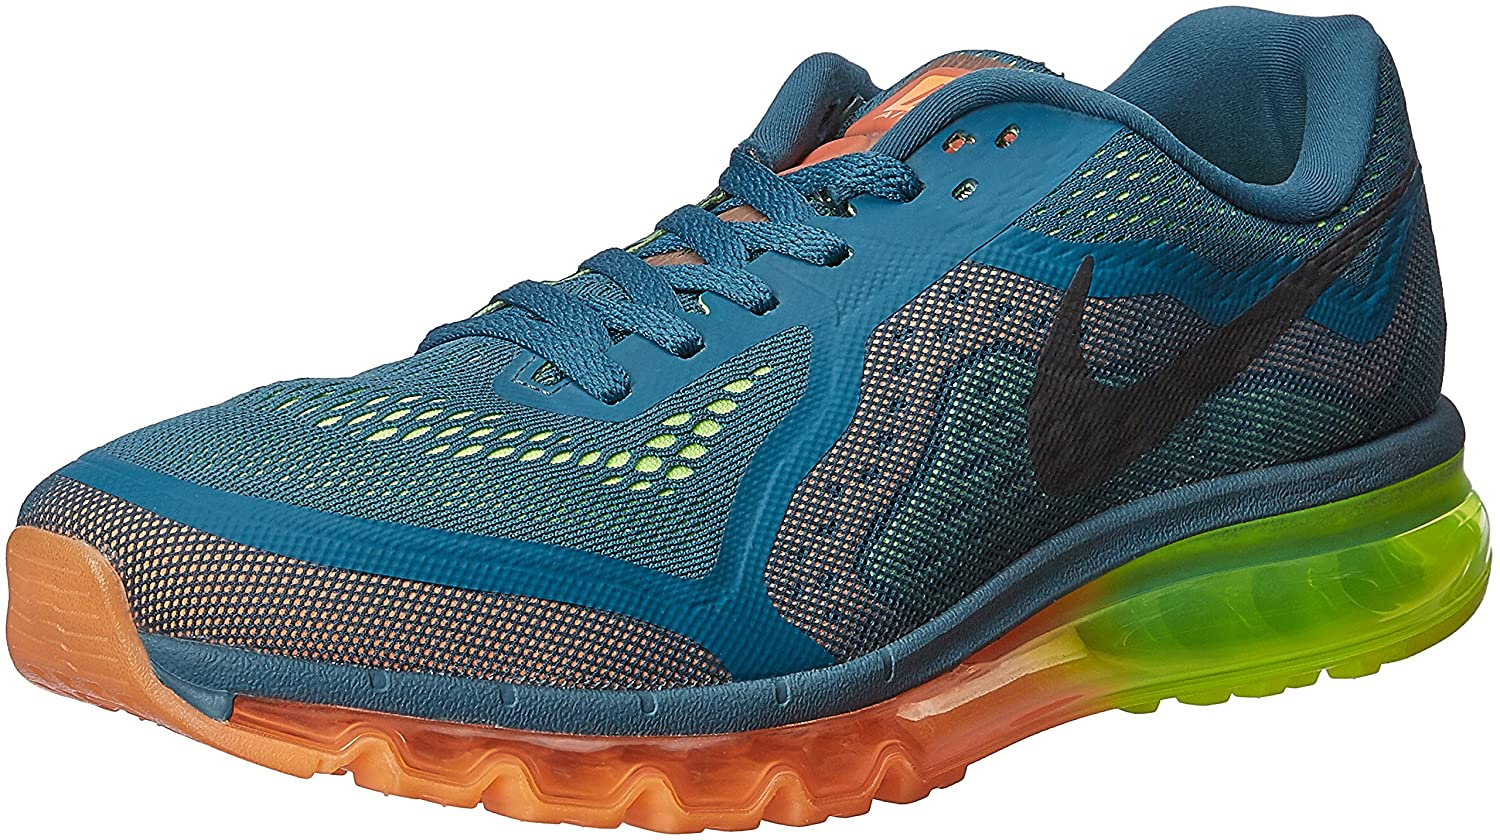 more photos 06839 0a718 Amazon.com   Nike Air Max 2014 Mens Style  621077-308, Night  Factor Blk Atmc Orng Vlt, Size 10.5   Road Running